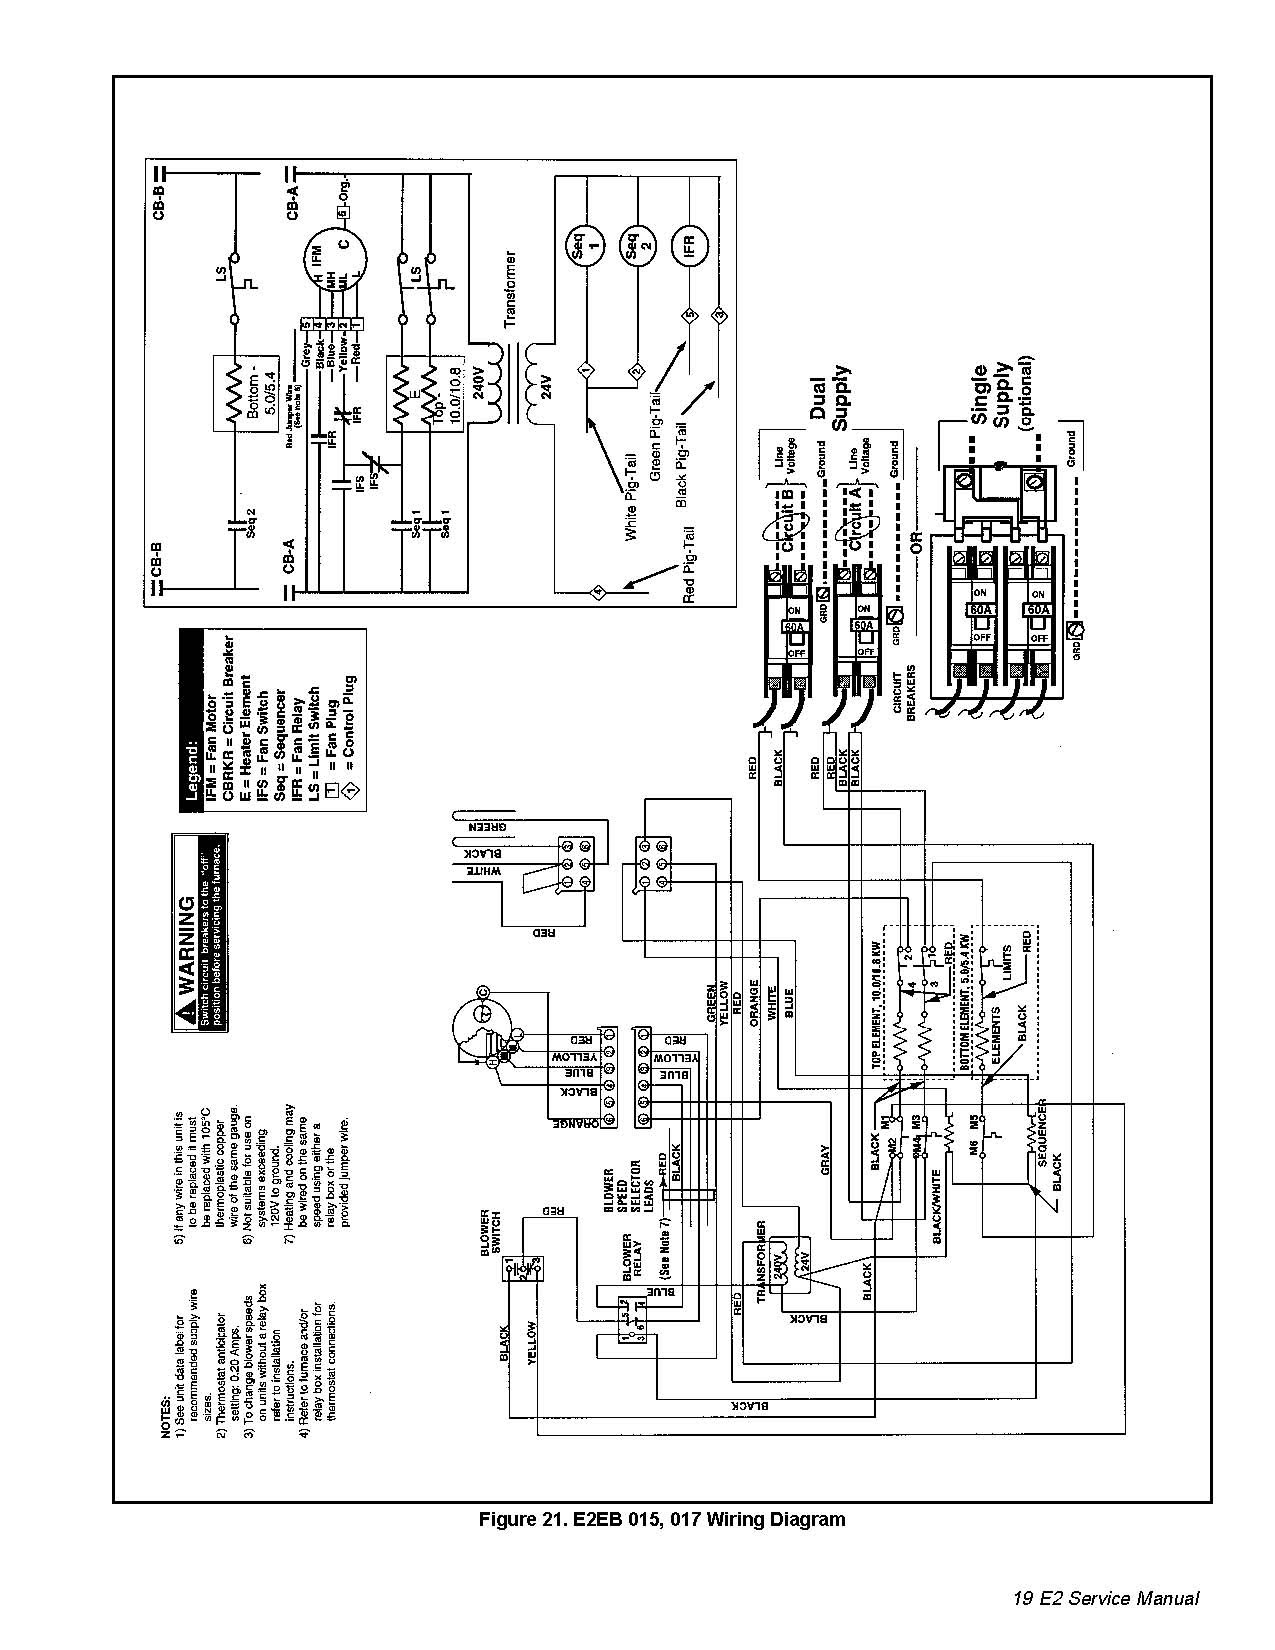 Diagram Evcon Mobile Home Furnace Wiring Diagram Full